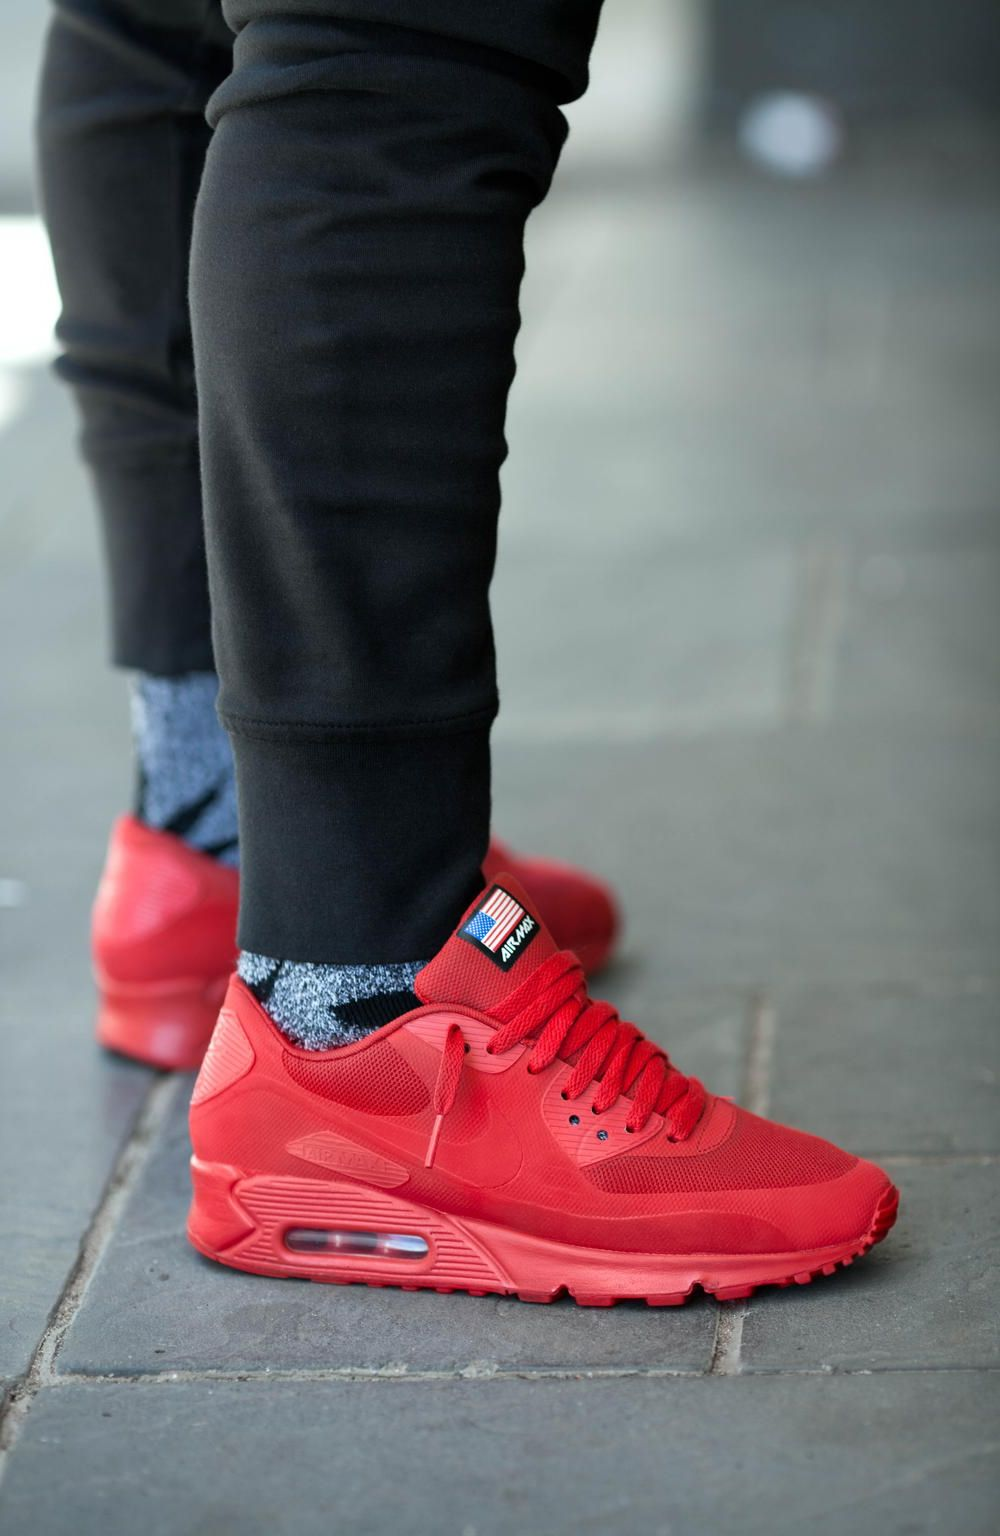 87c1f601eb1f Nike Air Max 90 Hyperfuse   Independence Day  Red